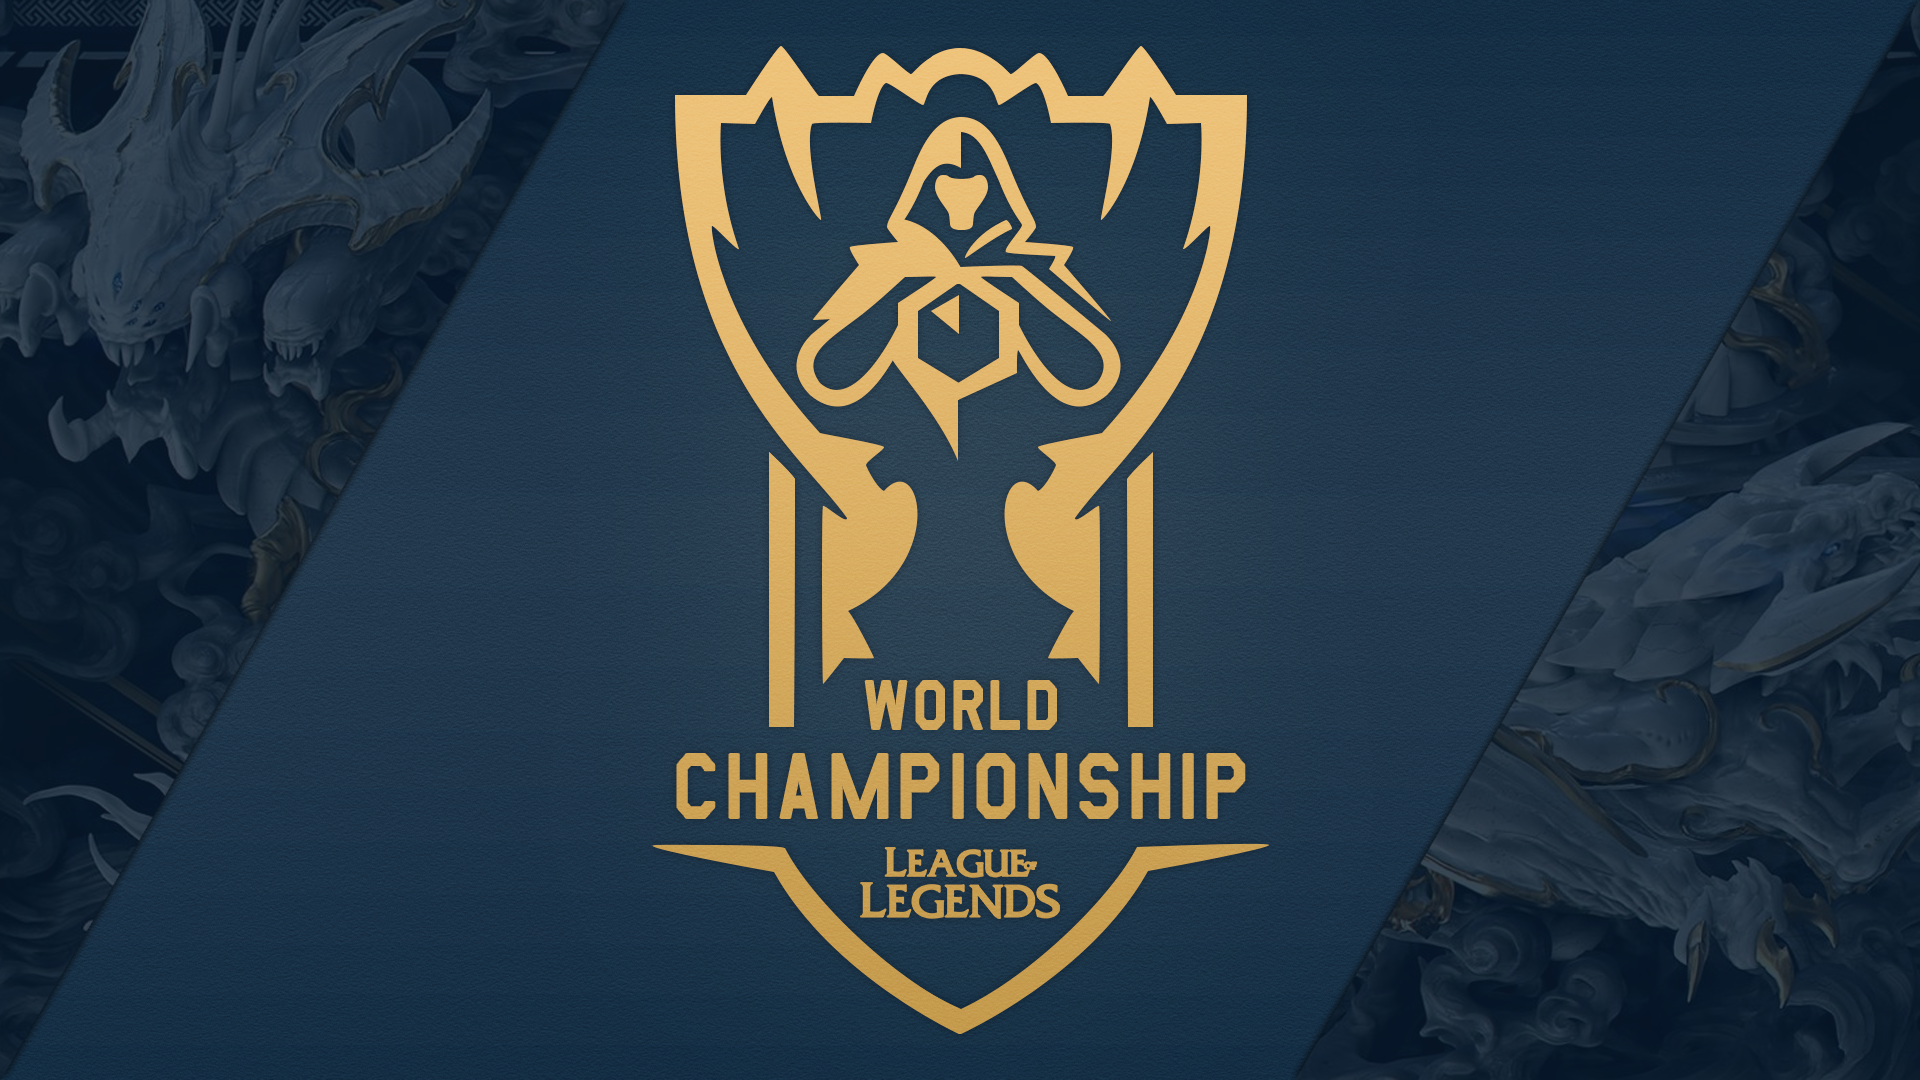 League Of Legends World Championship 2017 By Ruanes97 On Deviantart